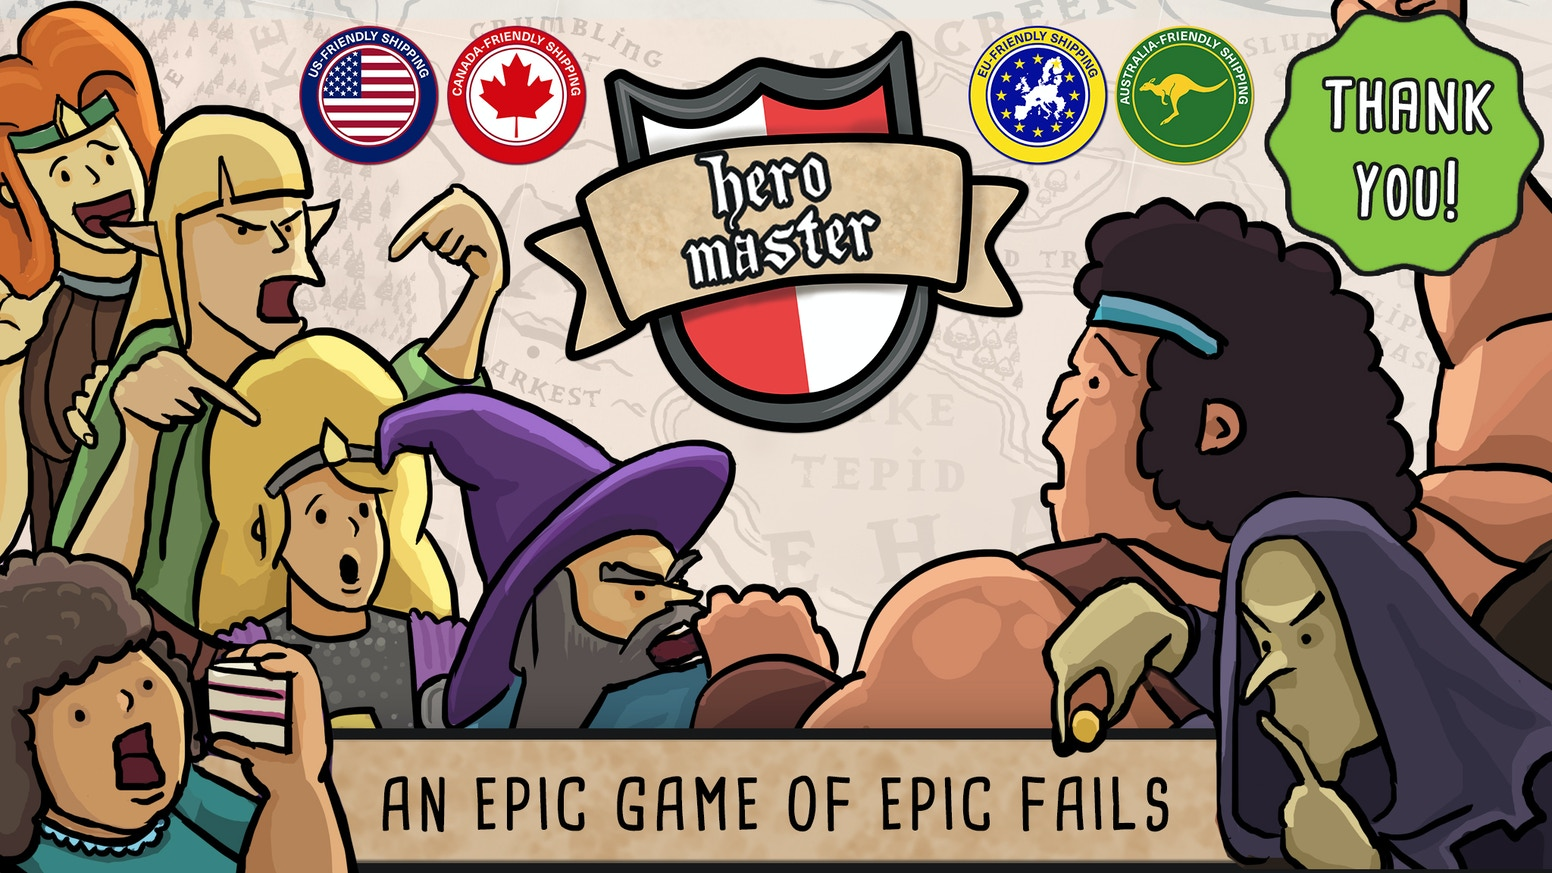 Hero Master An Epic Game Of Epic Fails The Board Game By Jamie